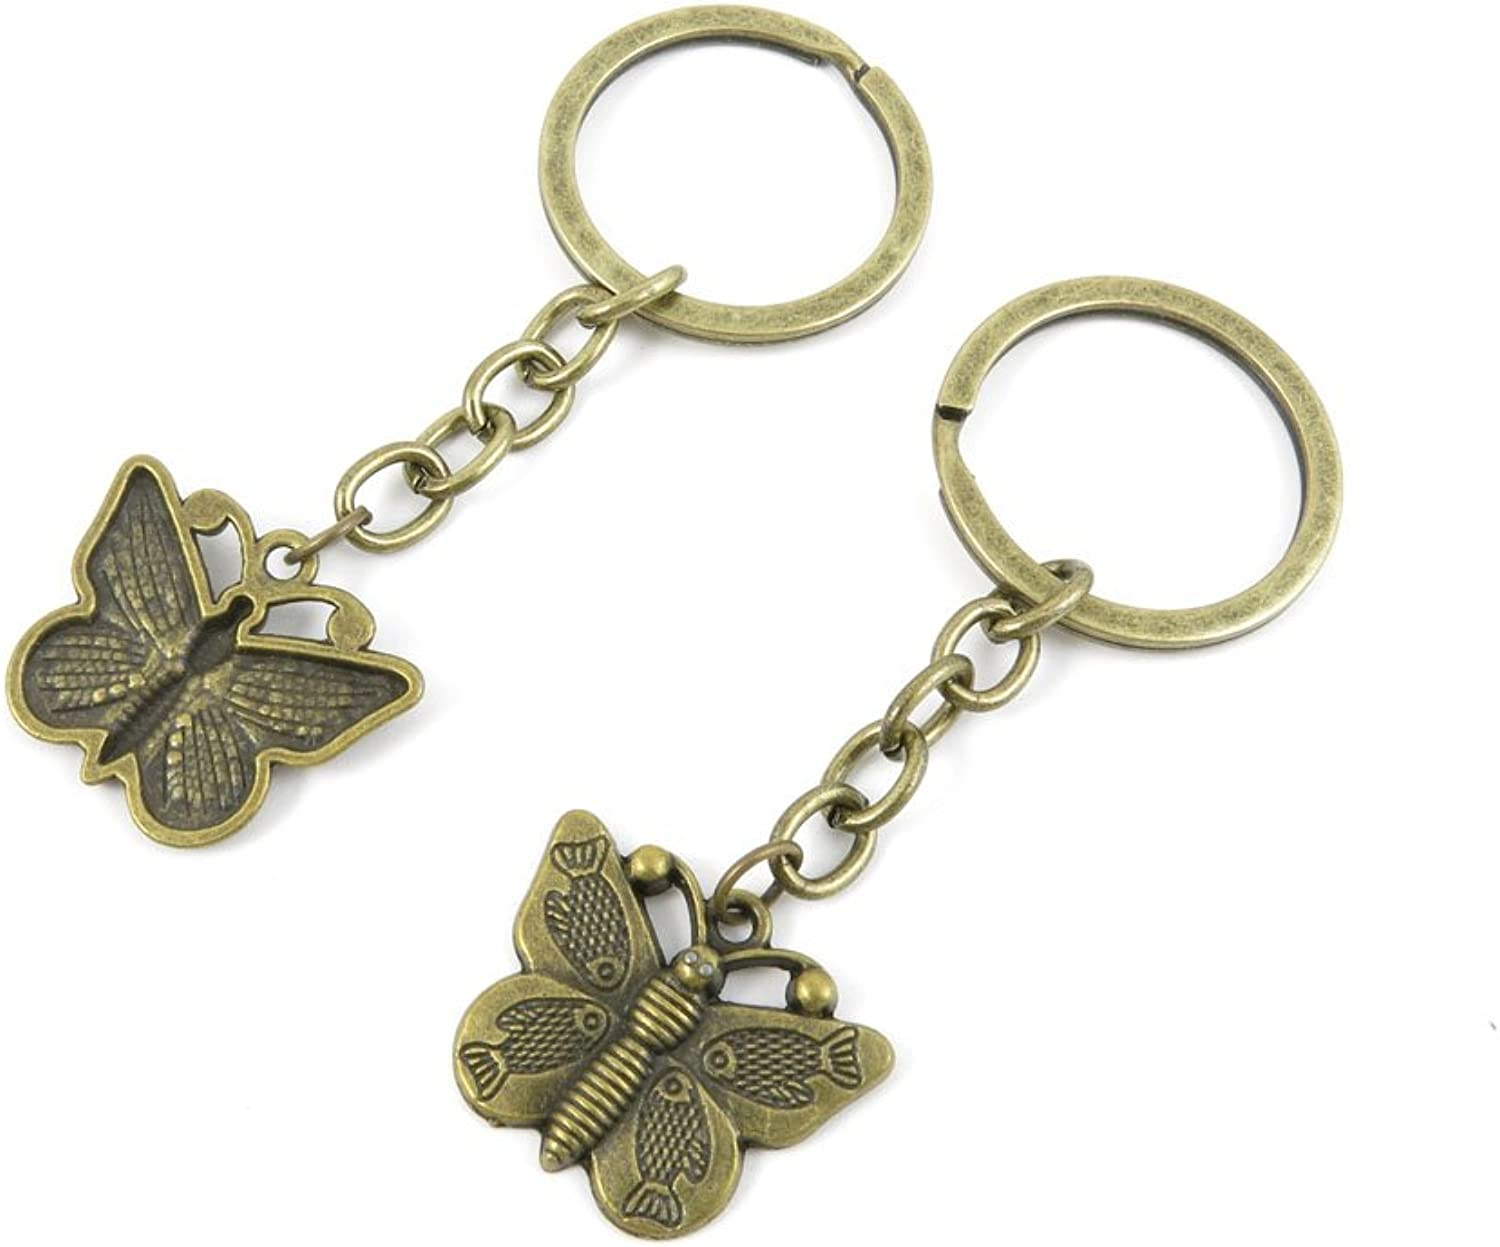 180 Pieces Fashion Jewelry Keyring Keychain Door Car Key Tag Ring Chain Supplier Supply Wholesale Bulk Lots O0BQ1 Fish Butterfly